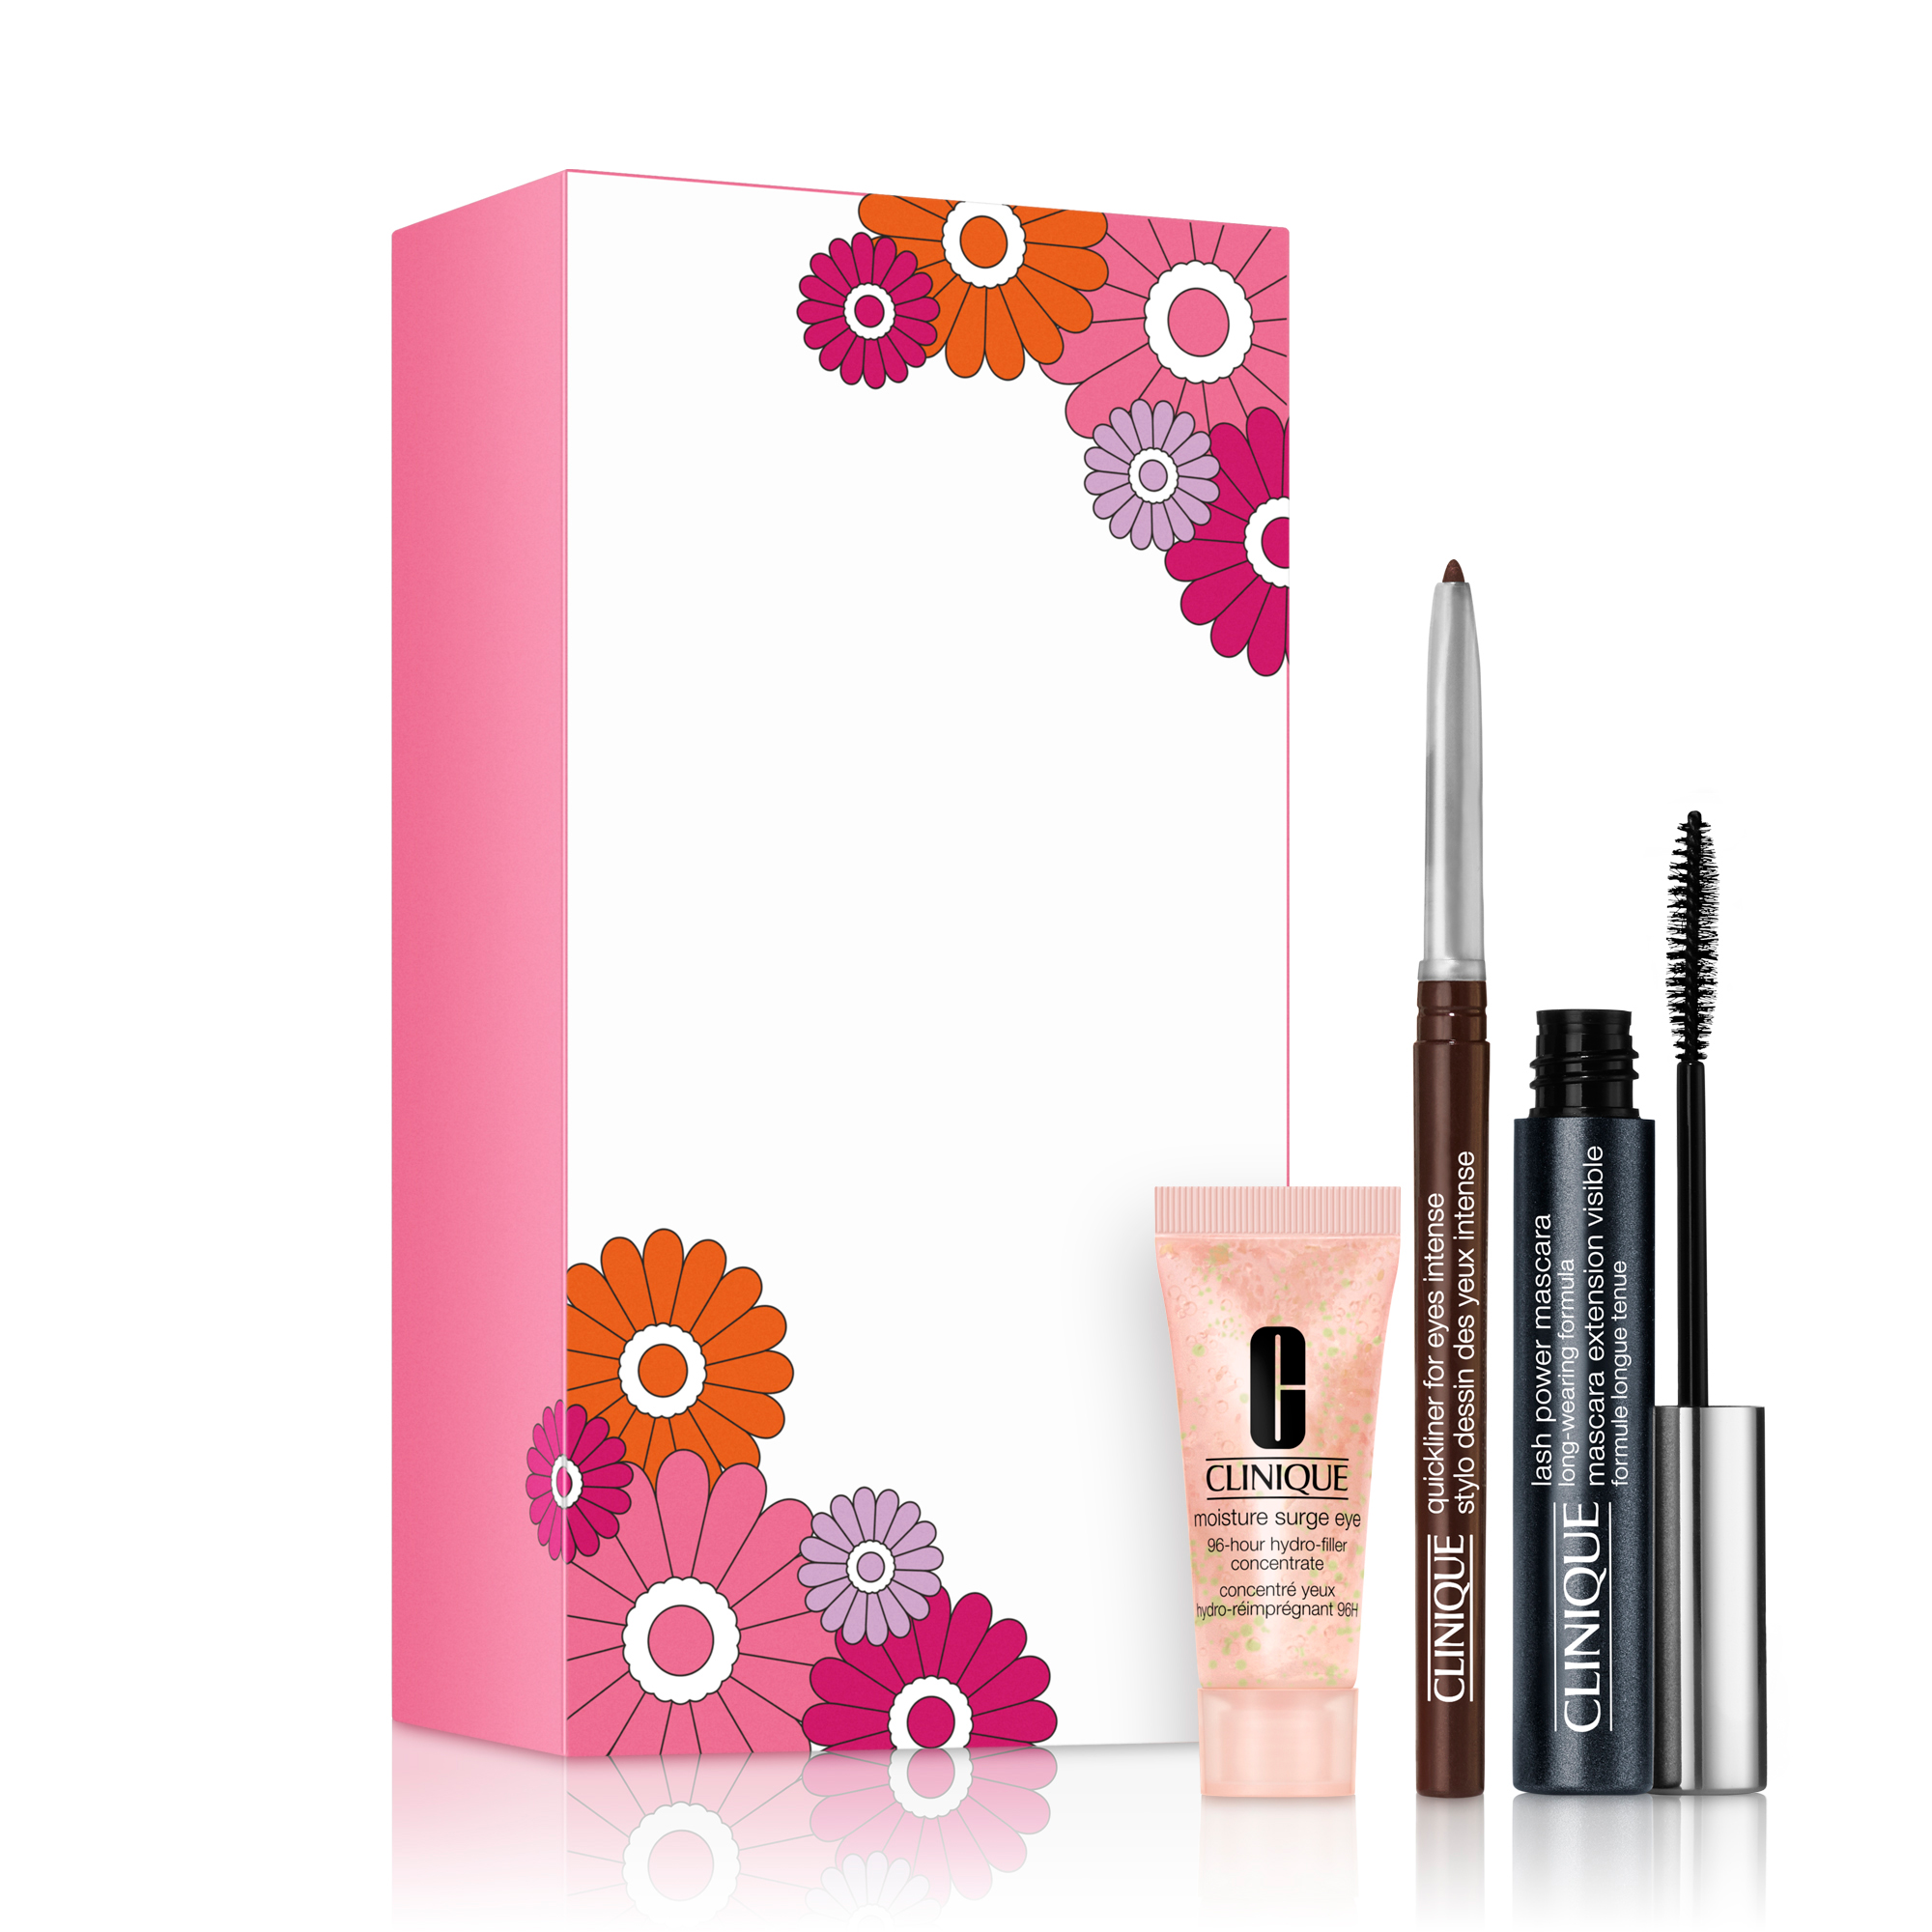 Clinique Mother's Day Power Lashes Makeup Gift Set